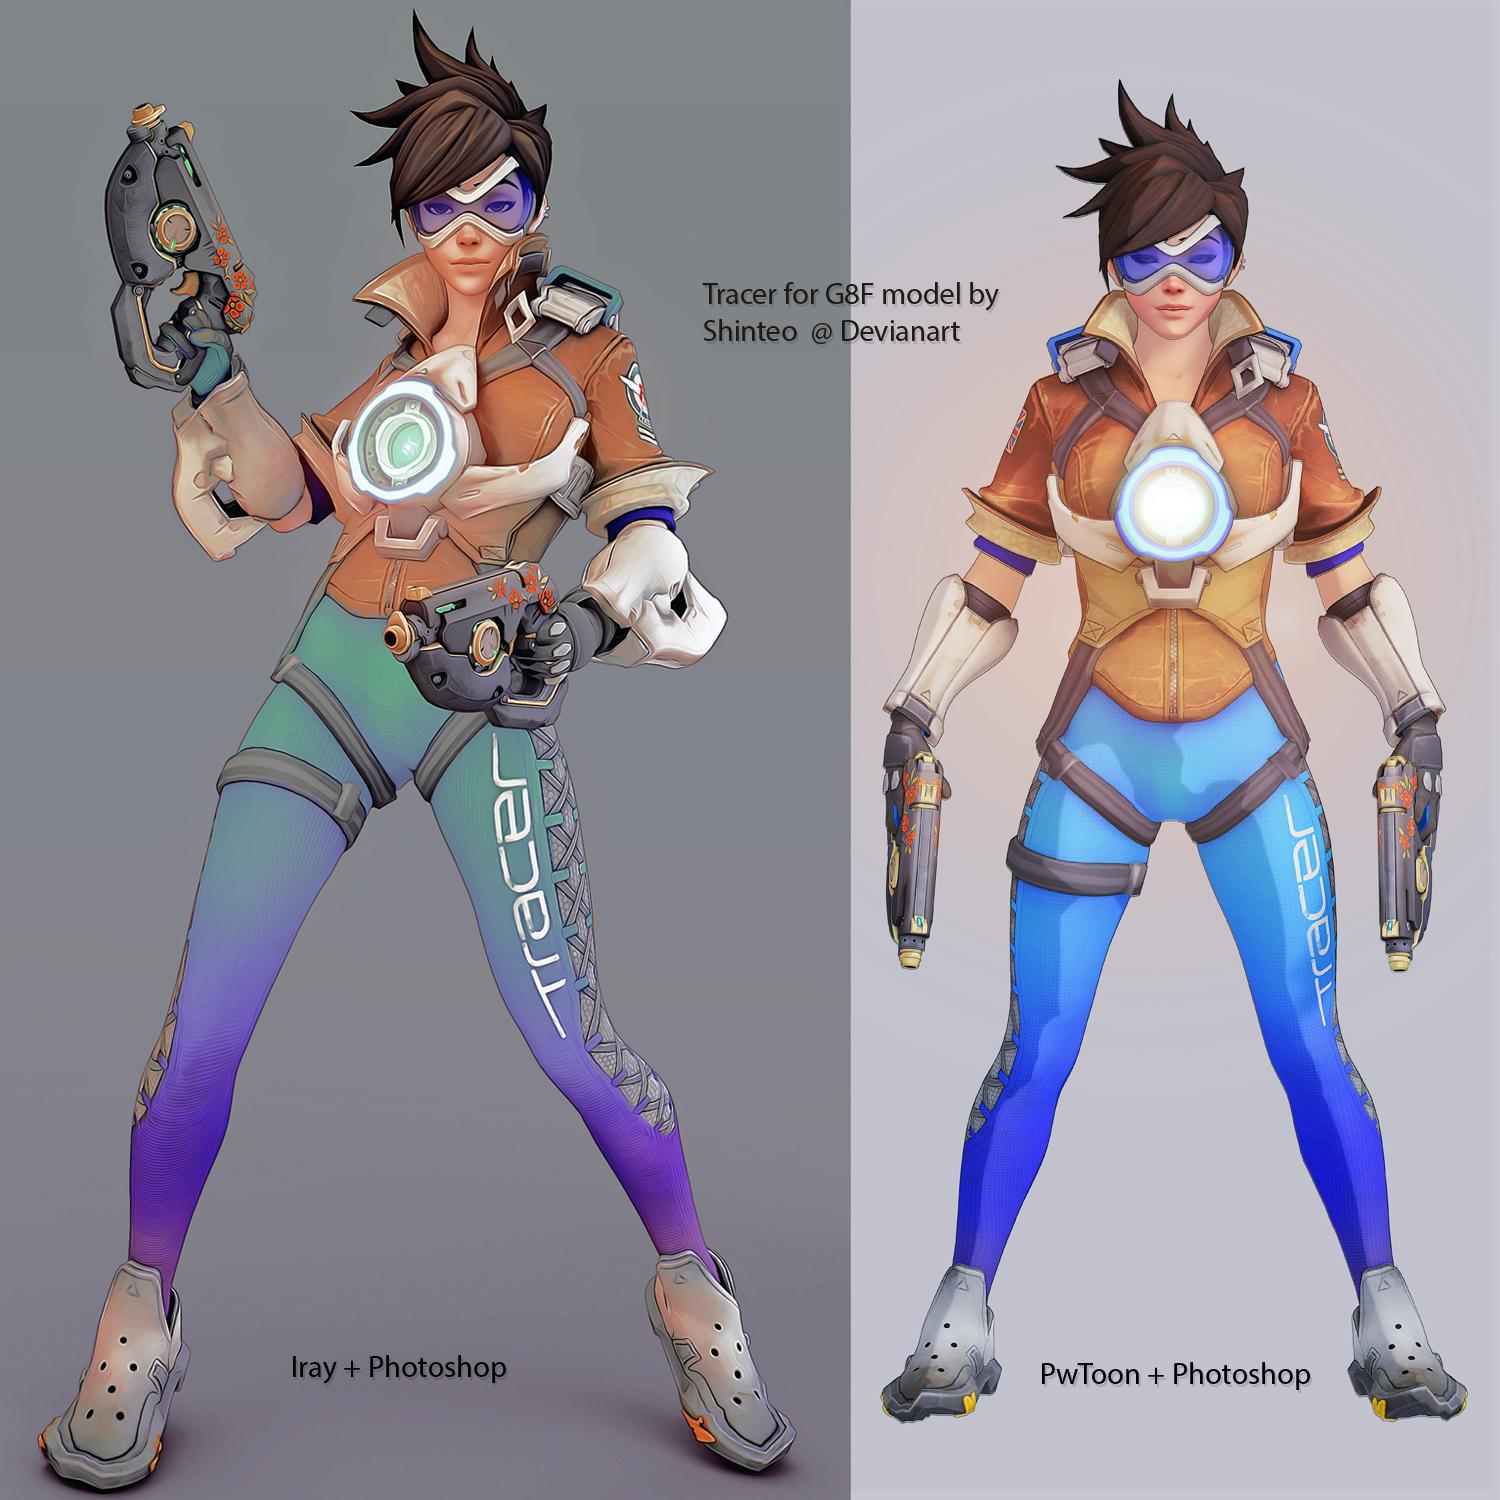 Tracer IRAY and PWTOOn